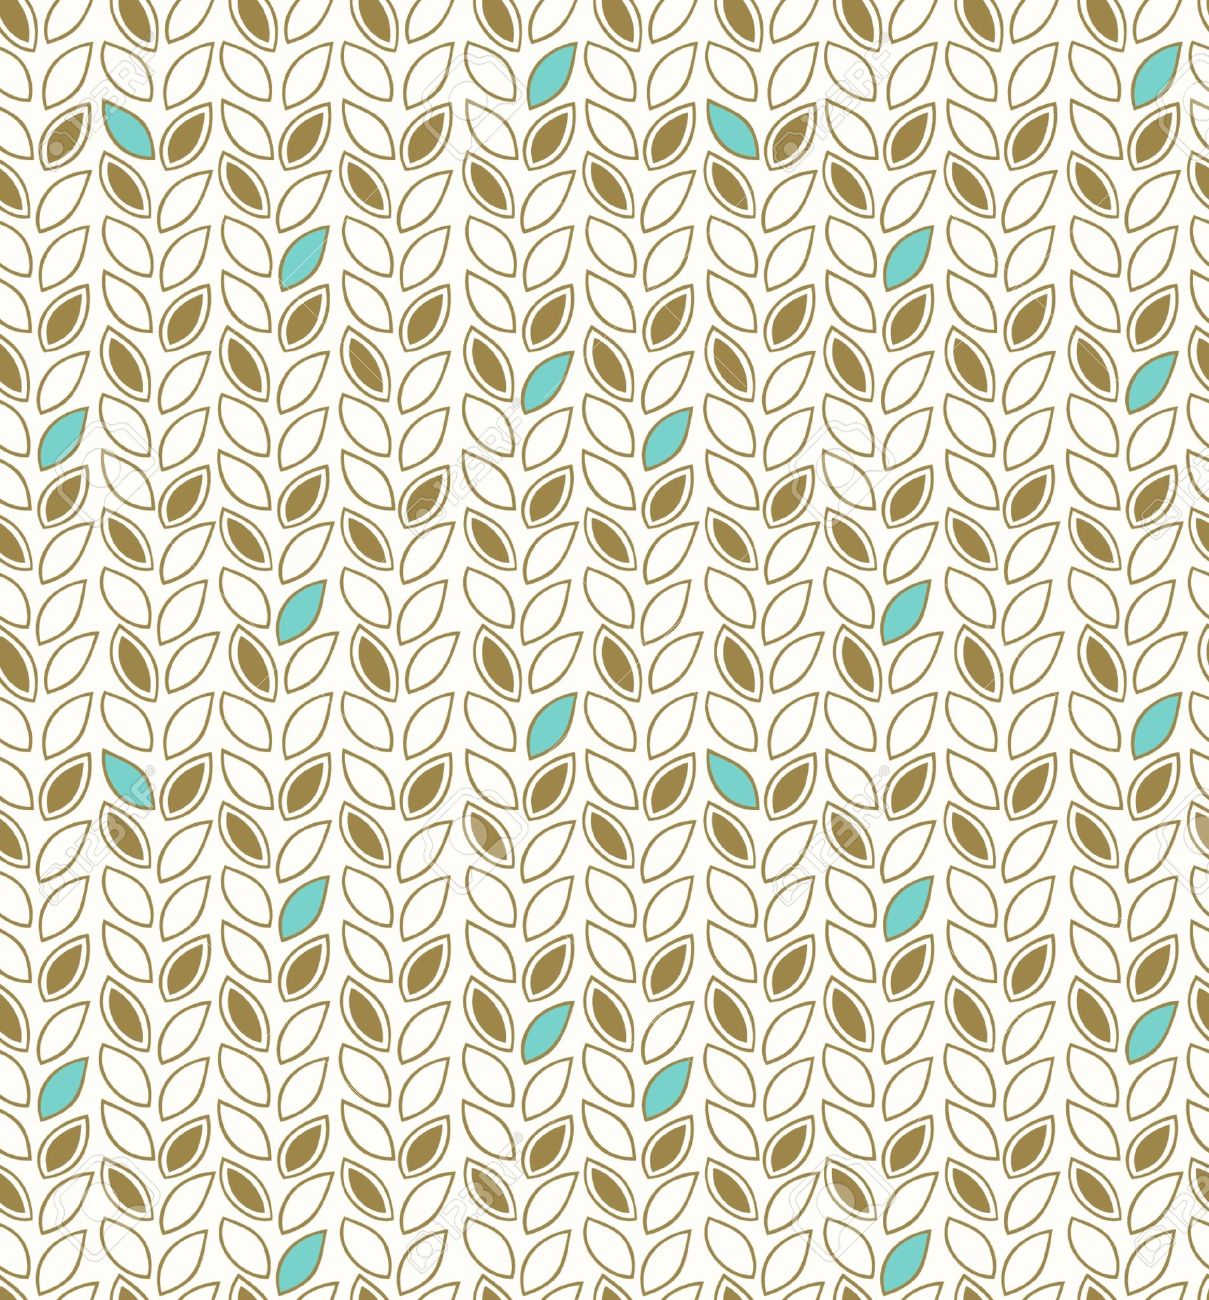 Modern Floral Pattern Seamless Background With Decorative Rows Of Leafs Template For Design Wallpapers Web